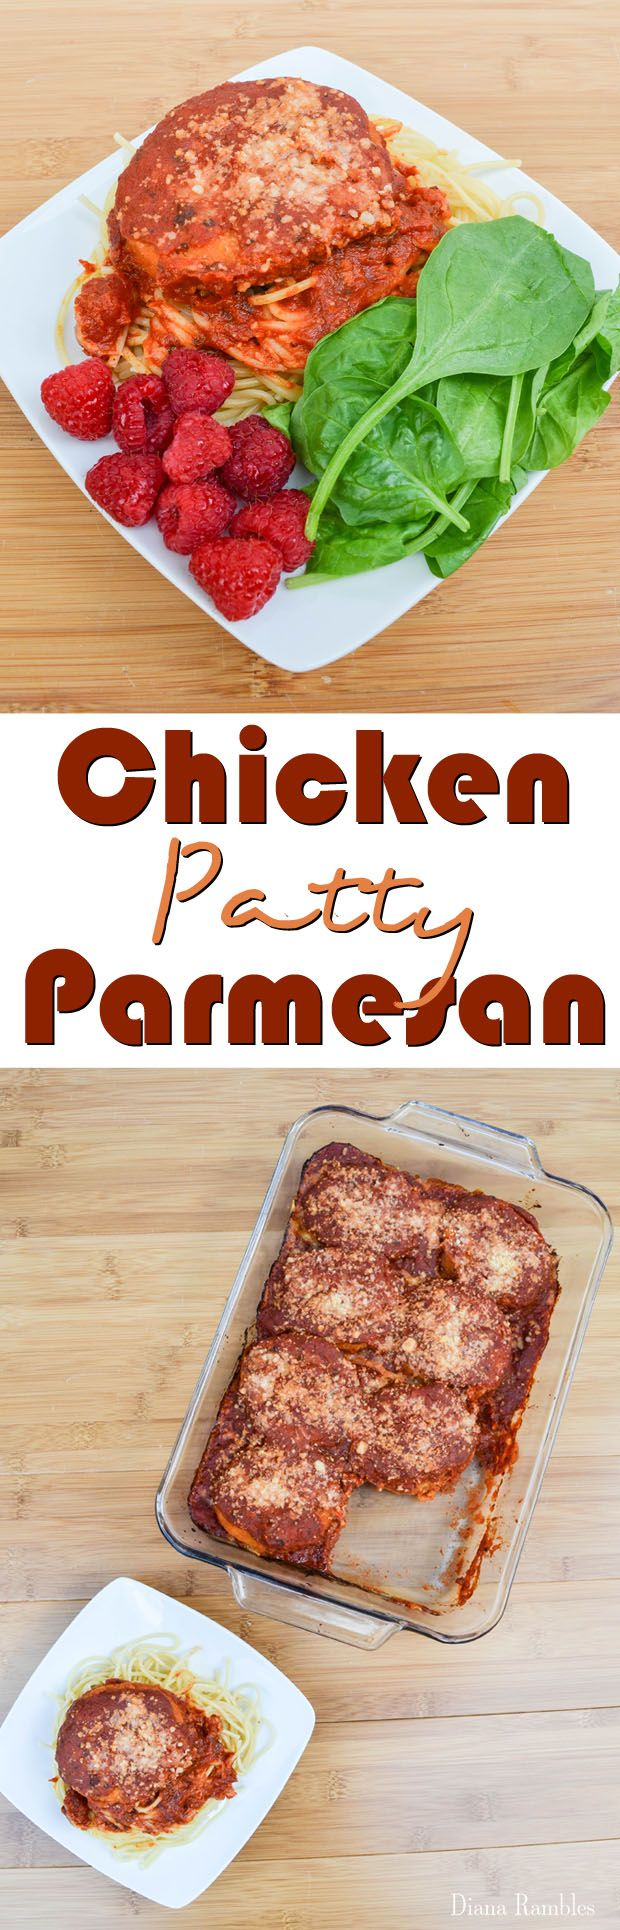 AD Chicken Patty Parmesan Recipe #BoostBackToSchool - Need a quick meal your family will love? Try this Chicken Patty Parmesan made with frozen chicken patties. It's super easy and ready in under 30 minutes.